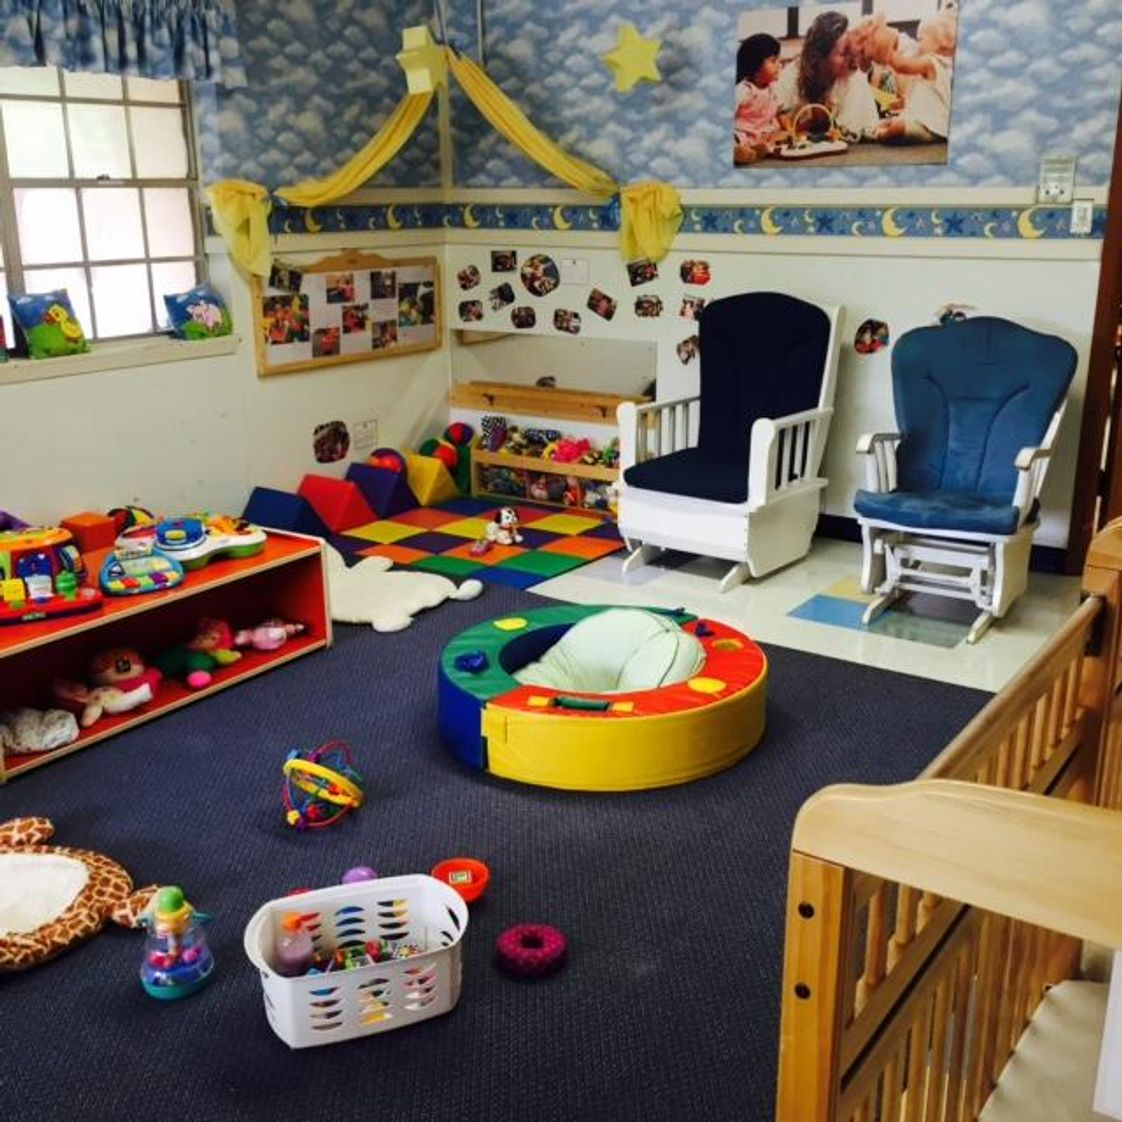 Deer Park KinderCare Photo - Infant nursery